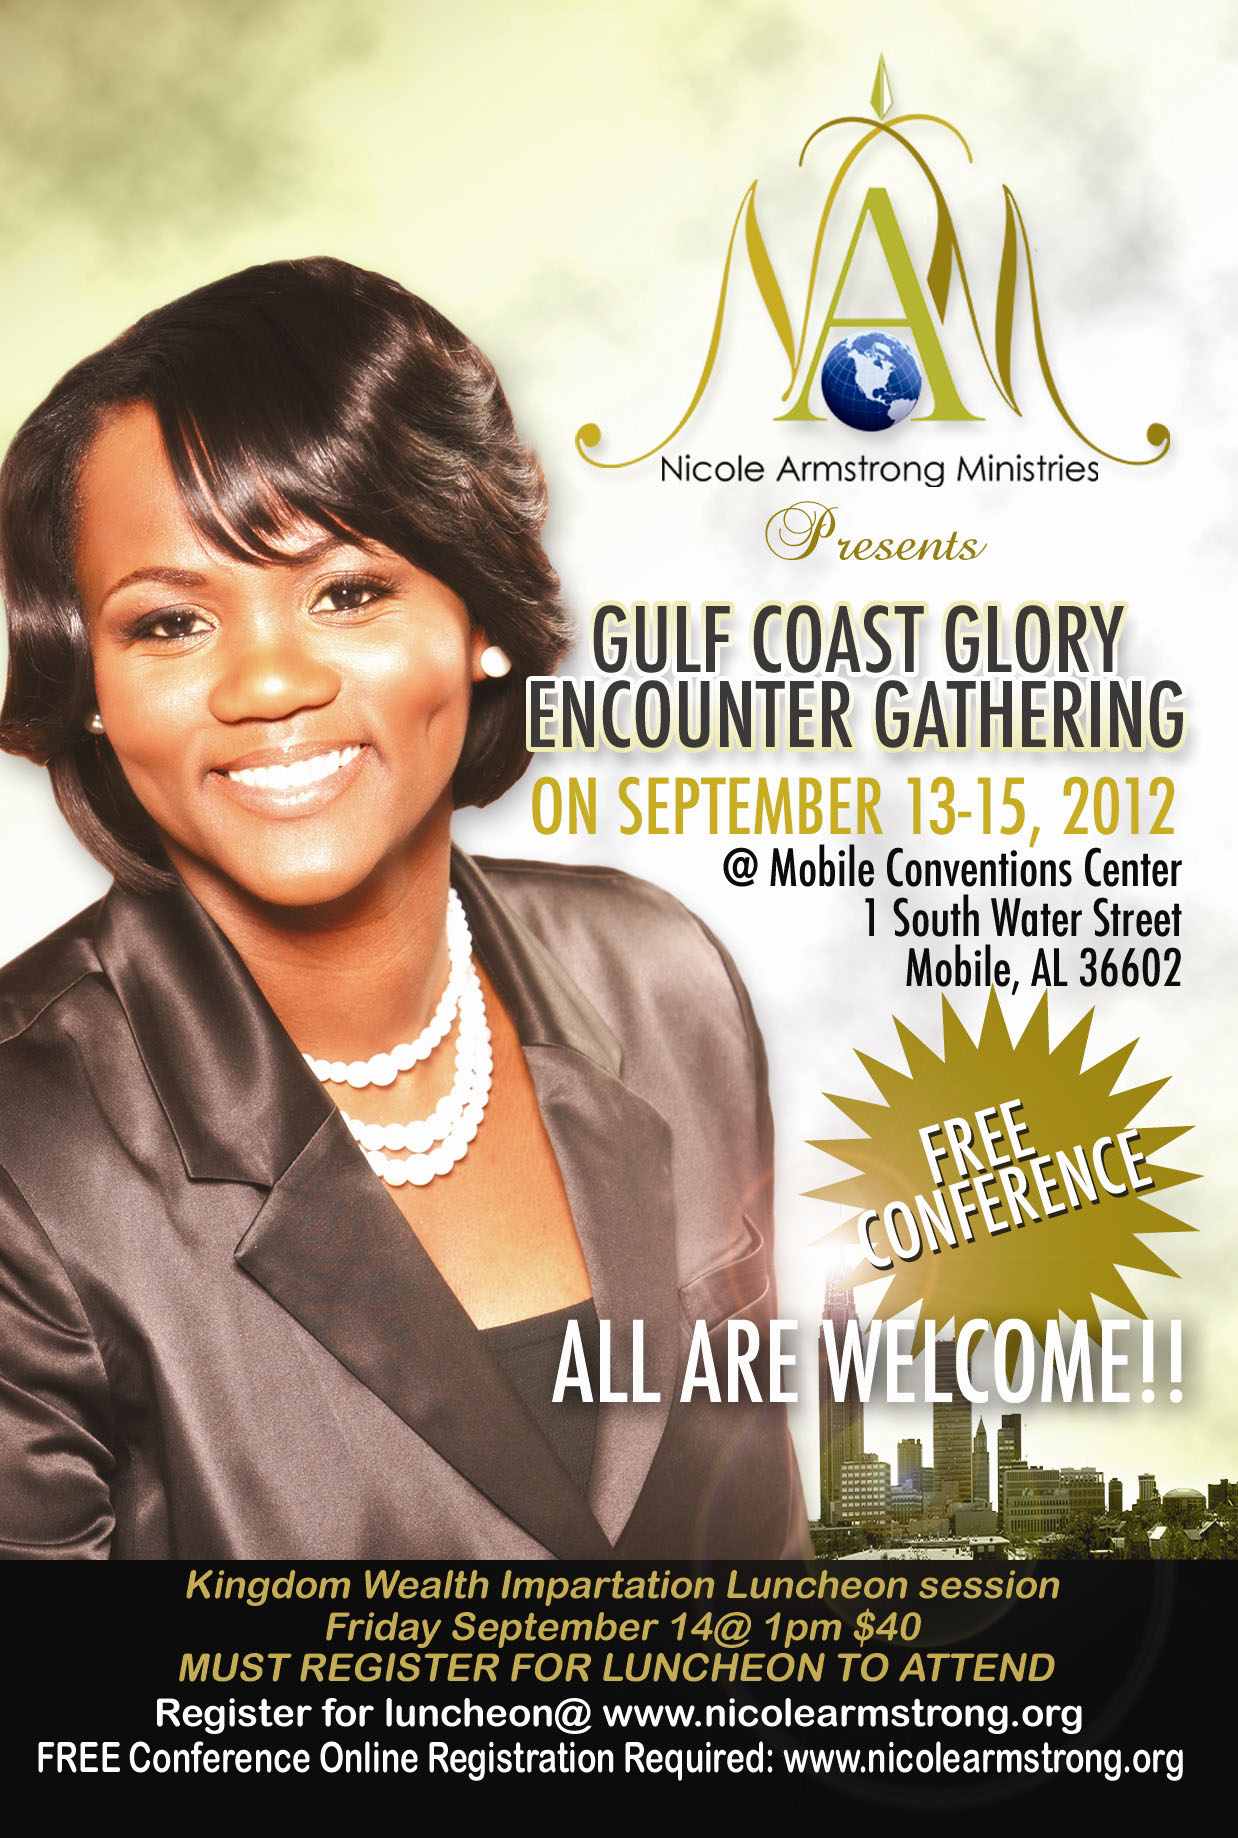 Gulf Coast Glory Encounter, hosted by Nicole Armstrong Ministries